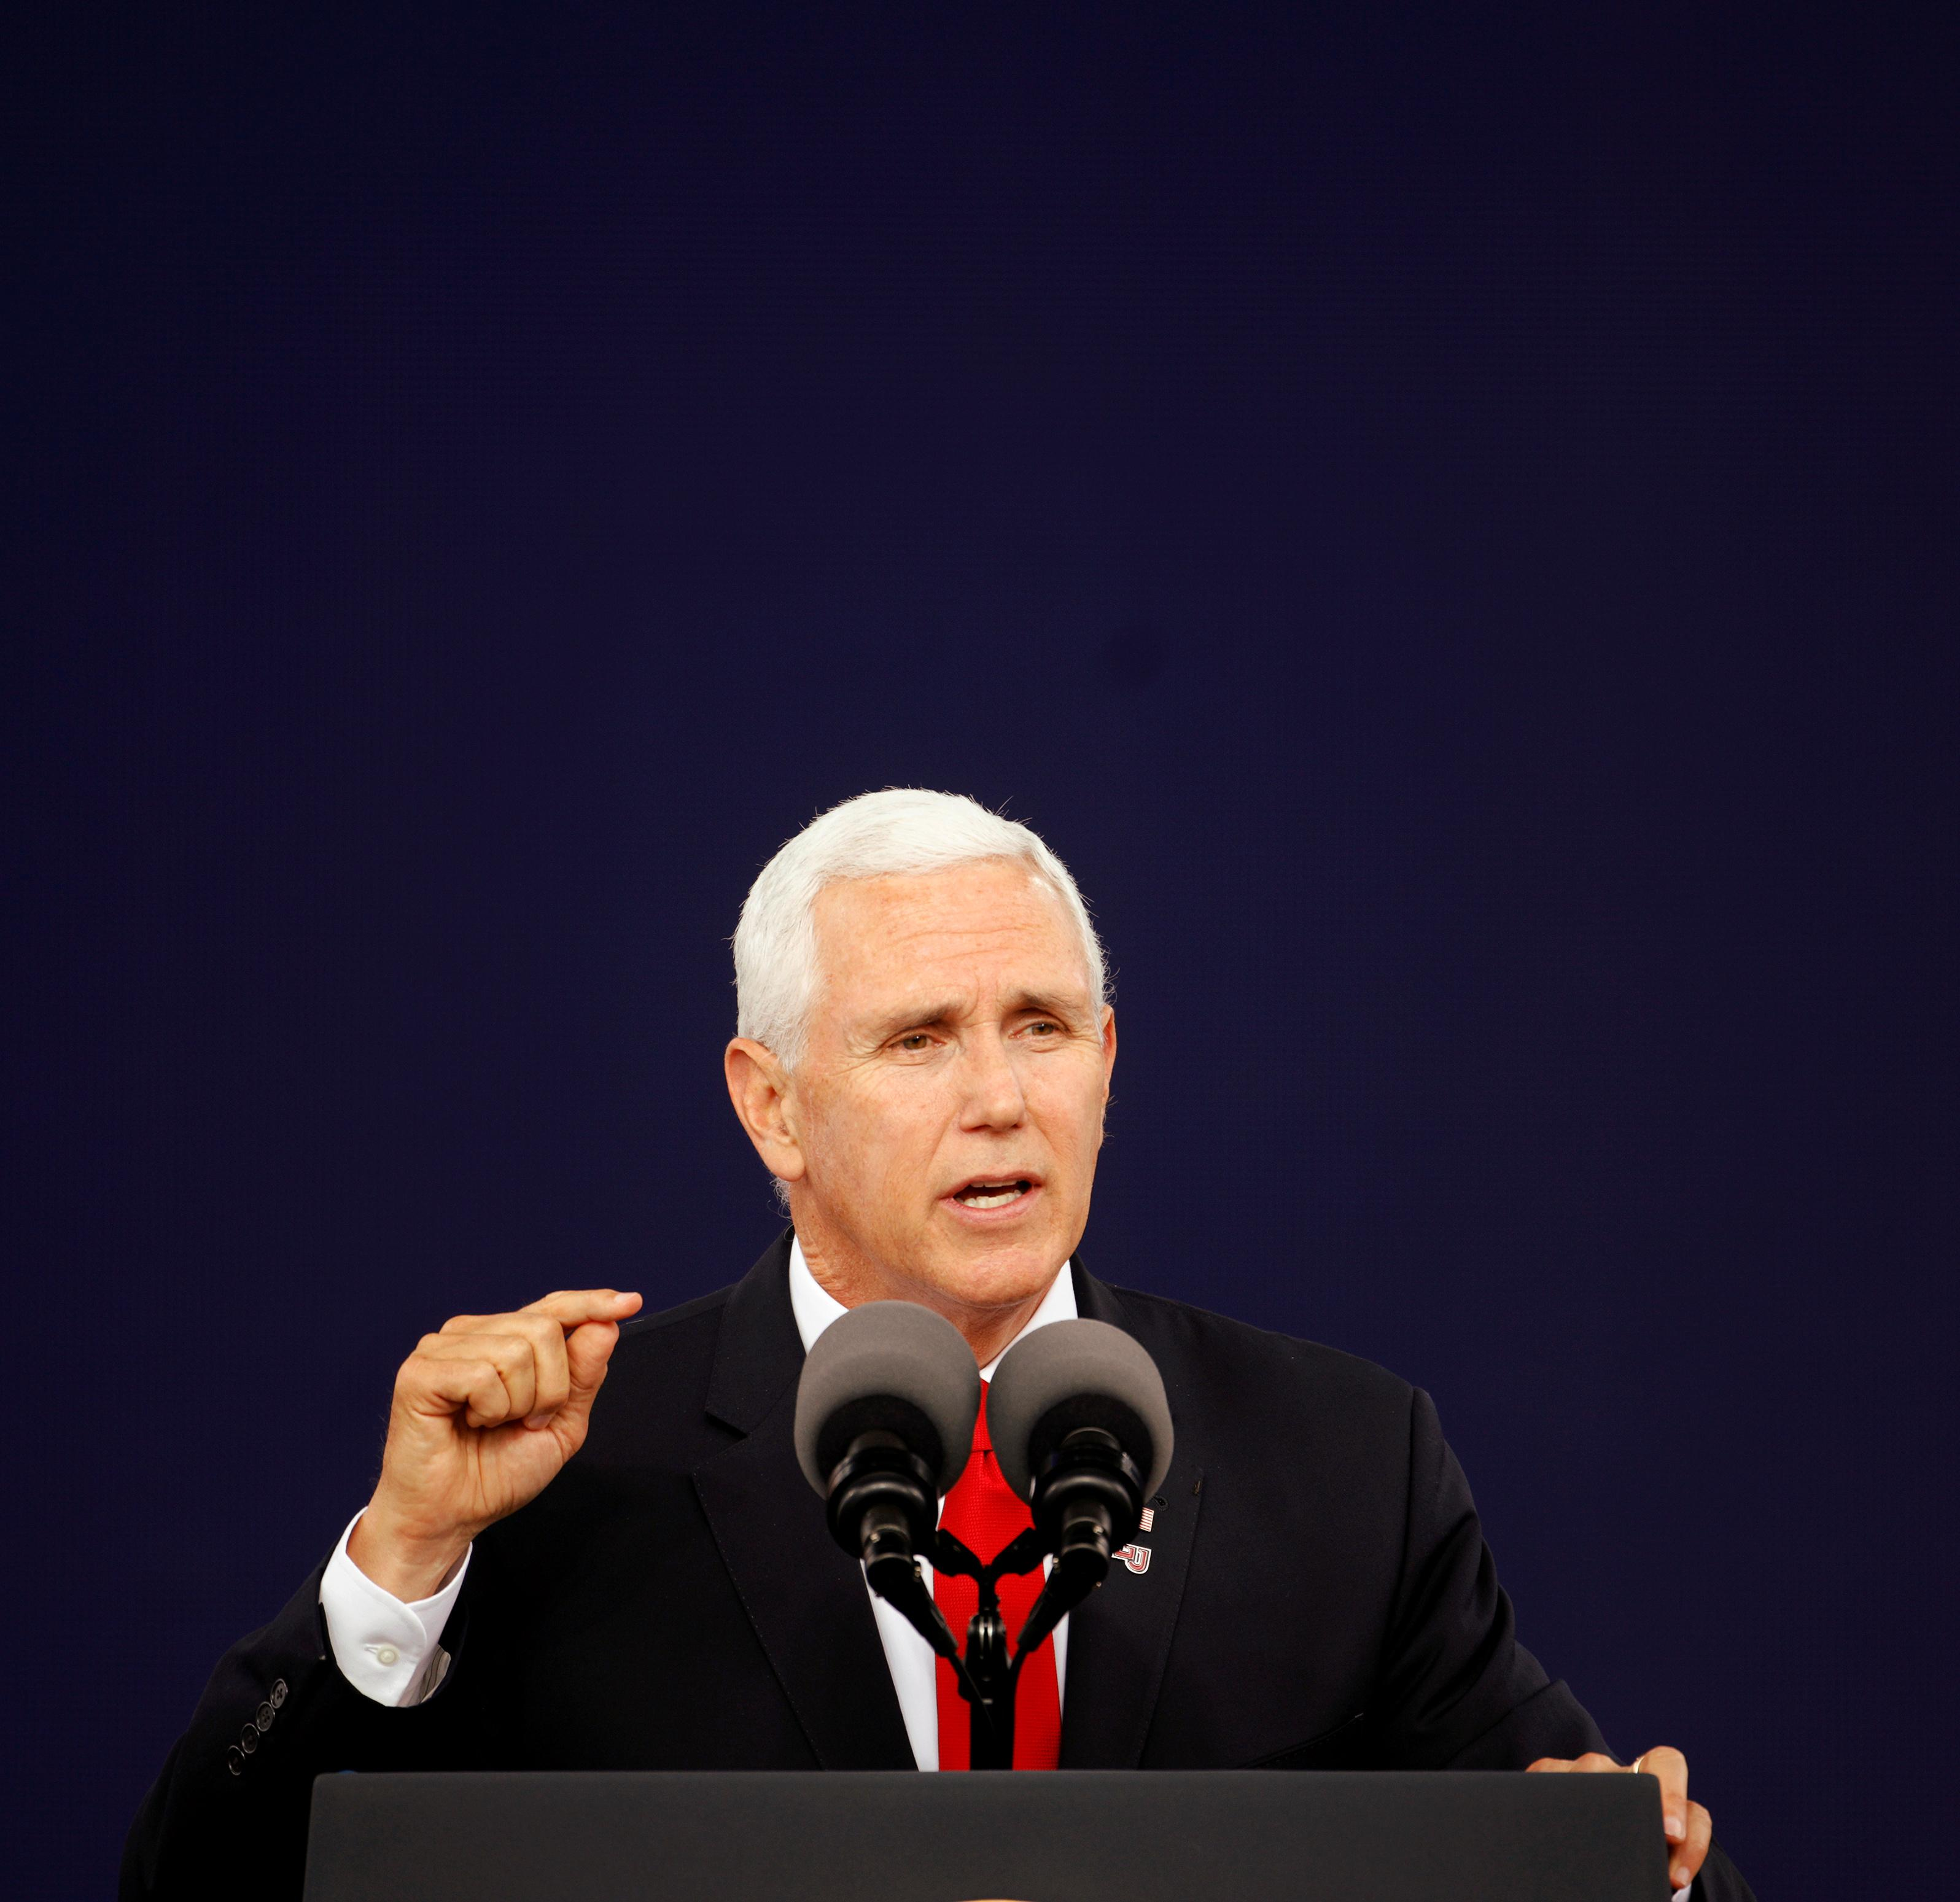 Vice President Pence: U.S. supports Israel's right to defend itself